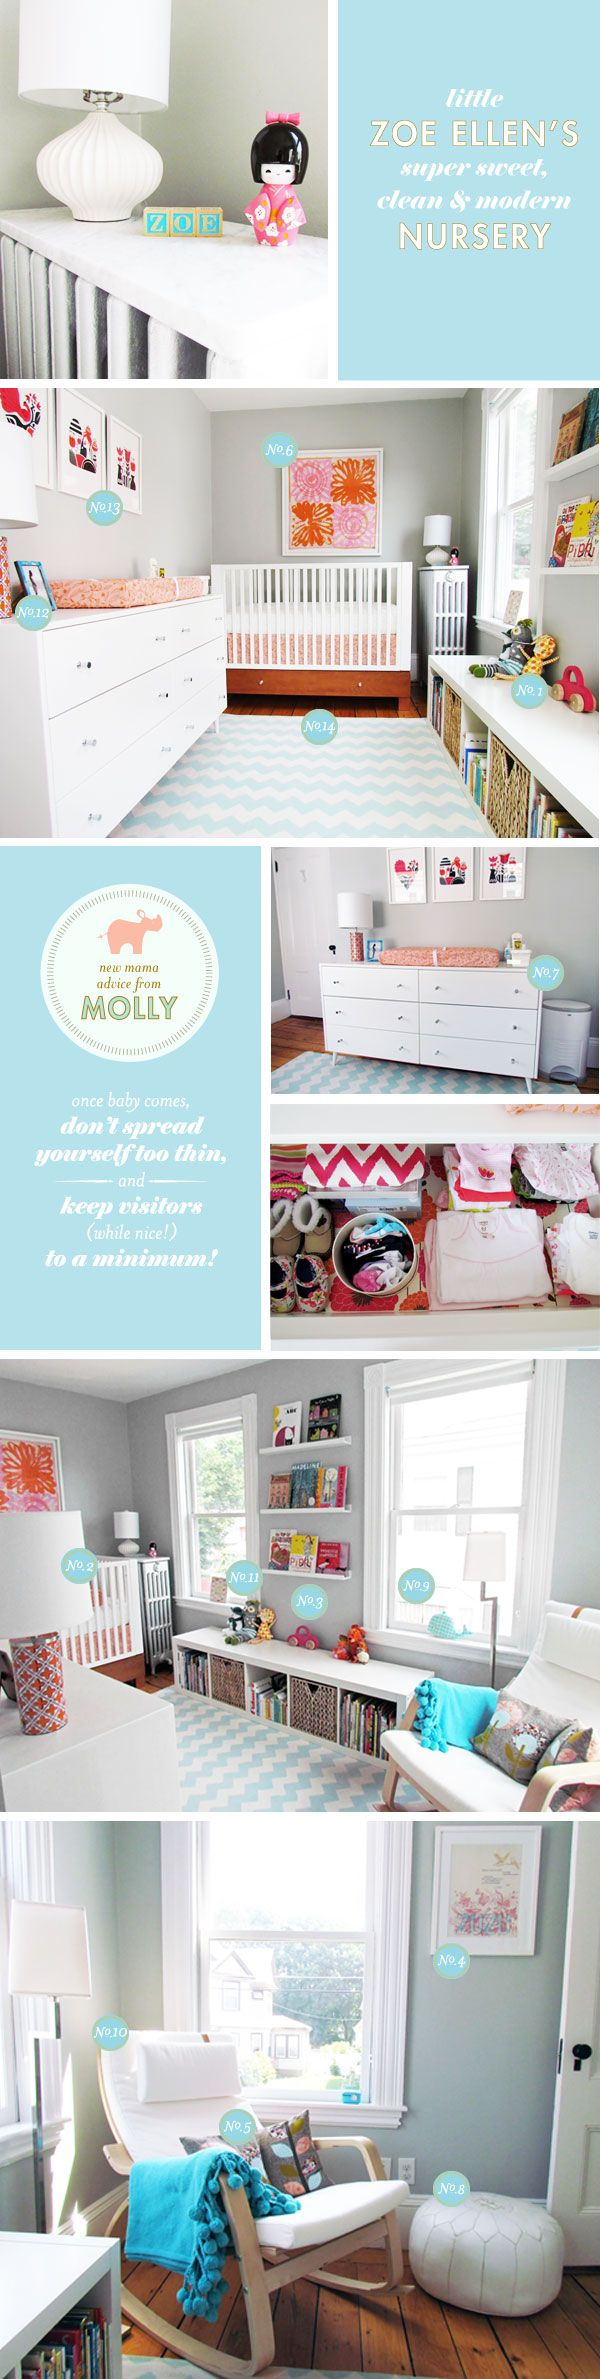 Love love this color scheme: Babies Room, Wall Color, Nursery Ideas, Baby Girl, Modern Nursery, Baby Room, Girl Nursery, Baby Nursery, Kid